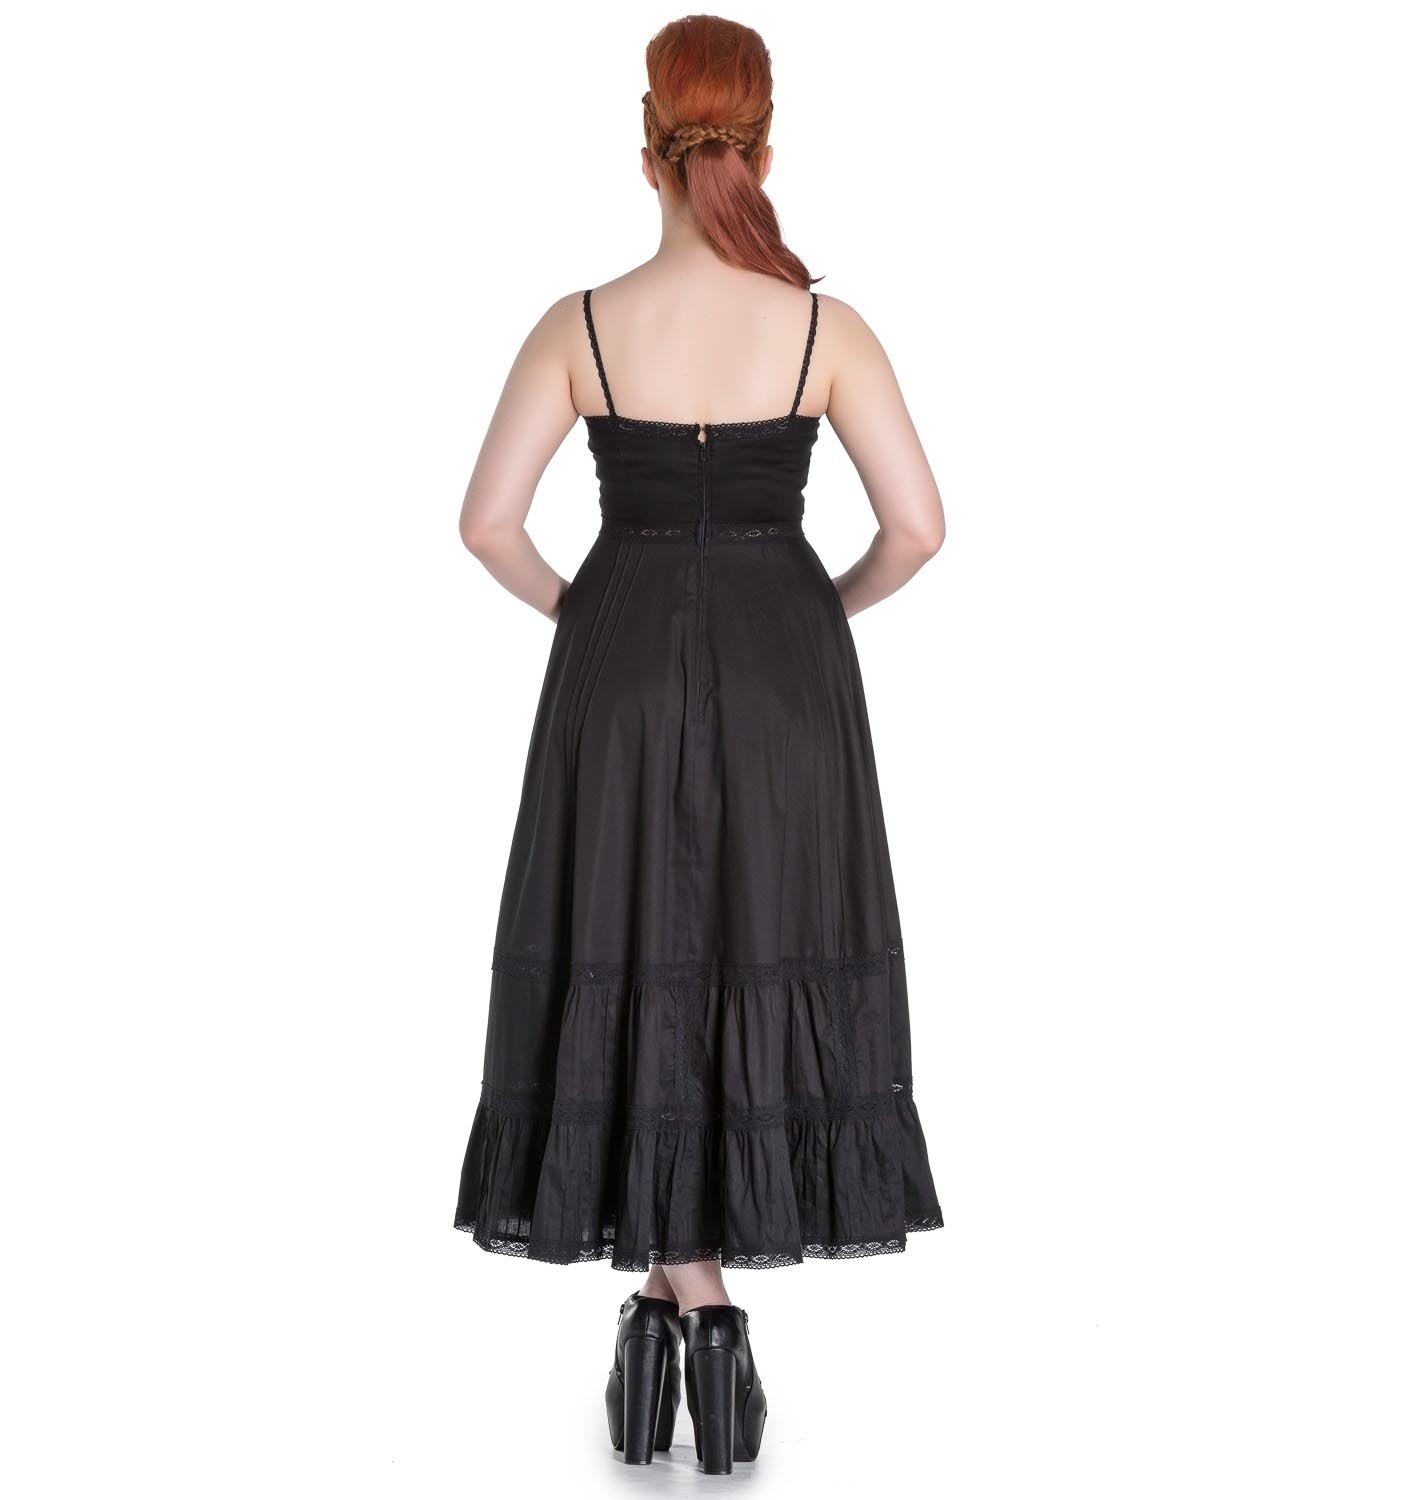 Hell-Bunny-Spin-Doctor-Goth-Maxi-Dress-ELIZABELLA-Black-All-Sizes thumbnail 13